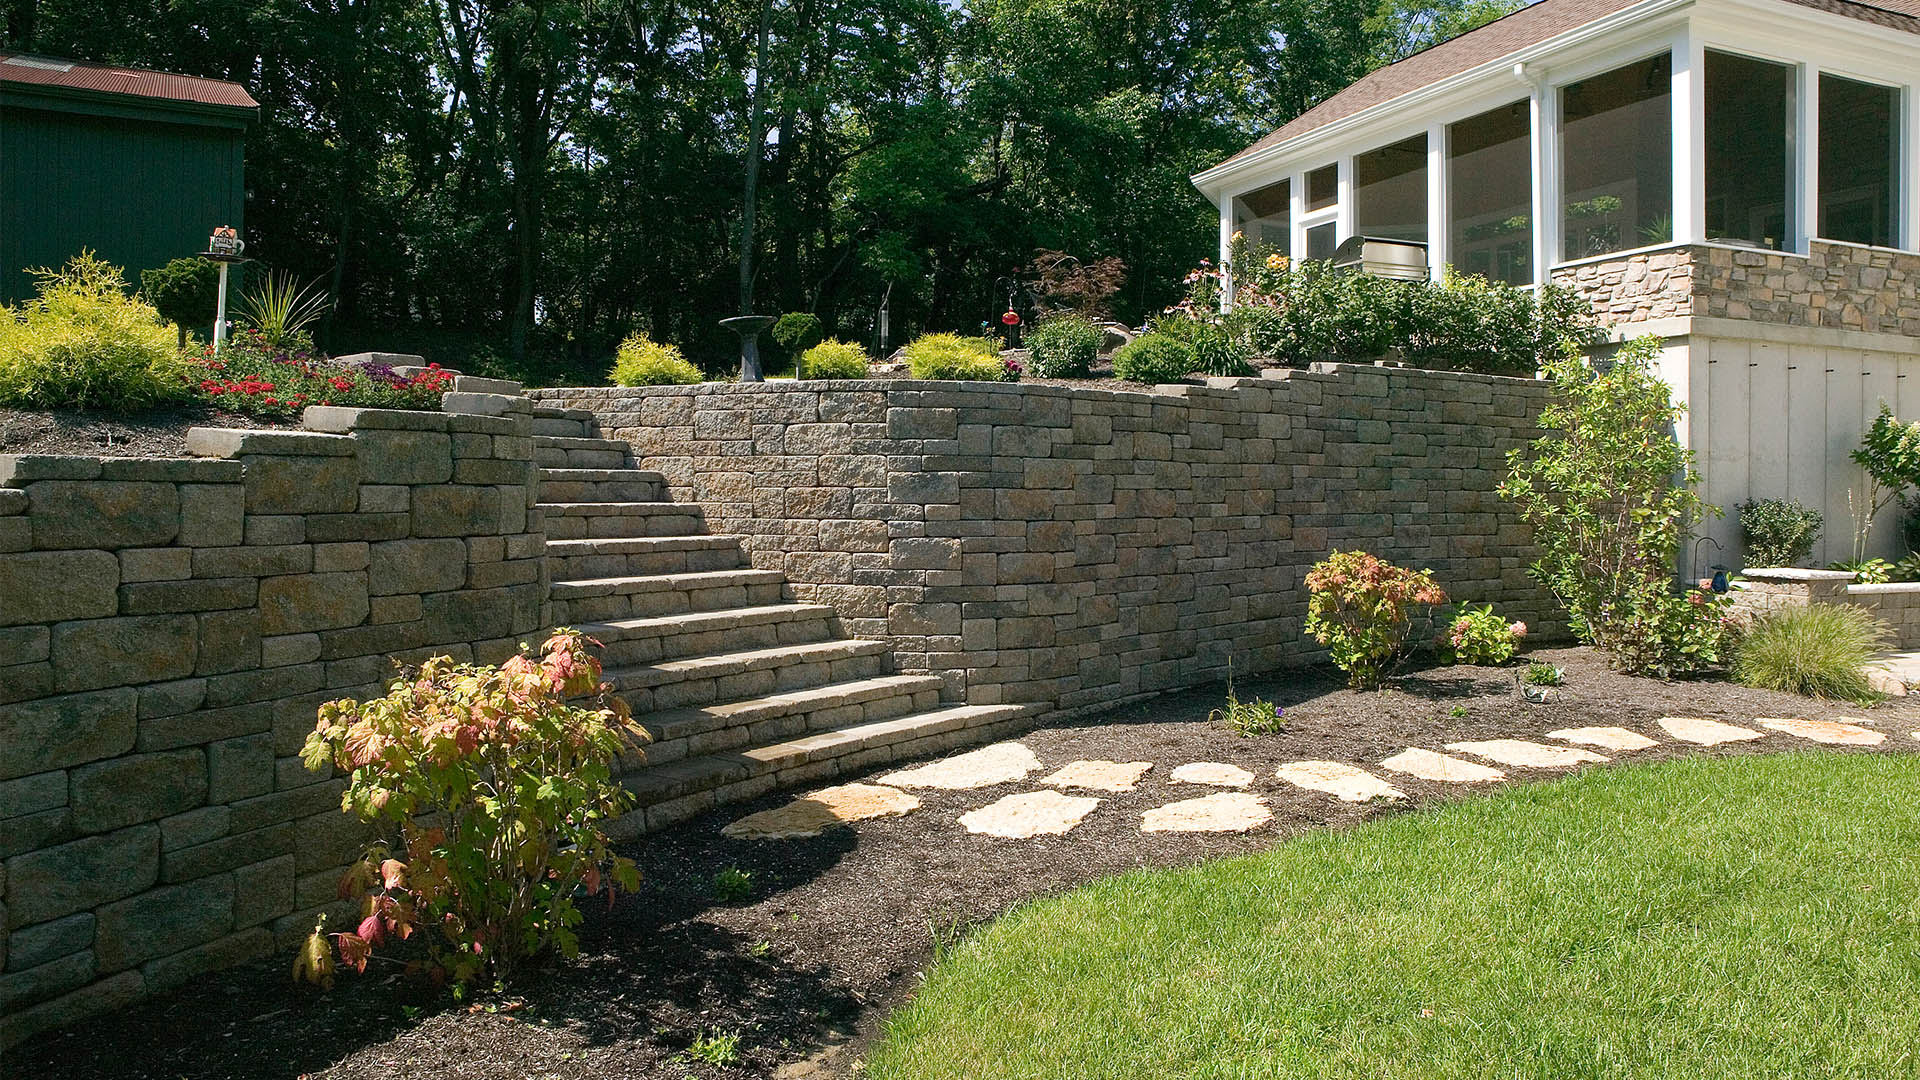 Premier Landscapes LLC Hardscapes, Retaining Walls and Walkways slide 2